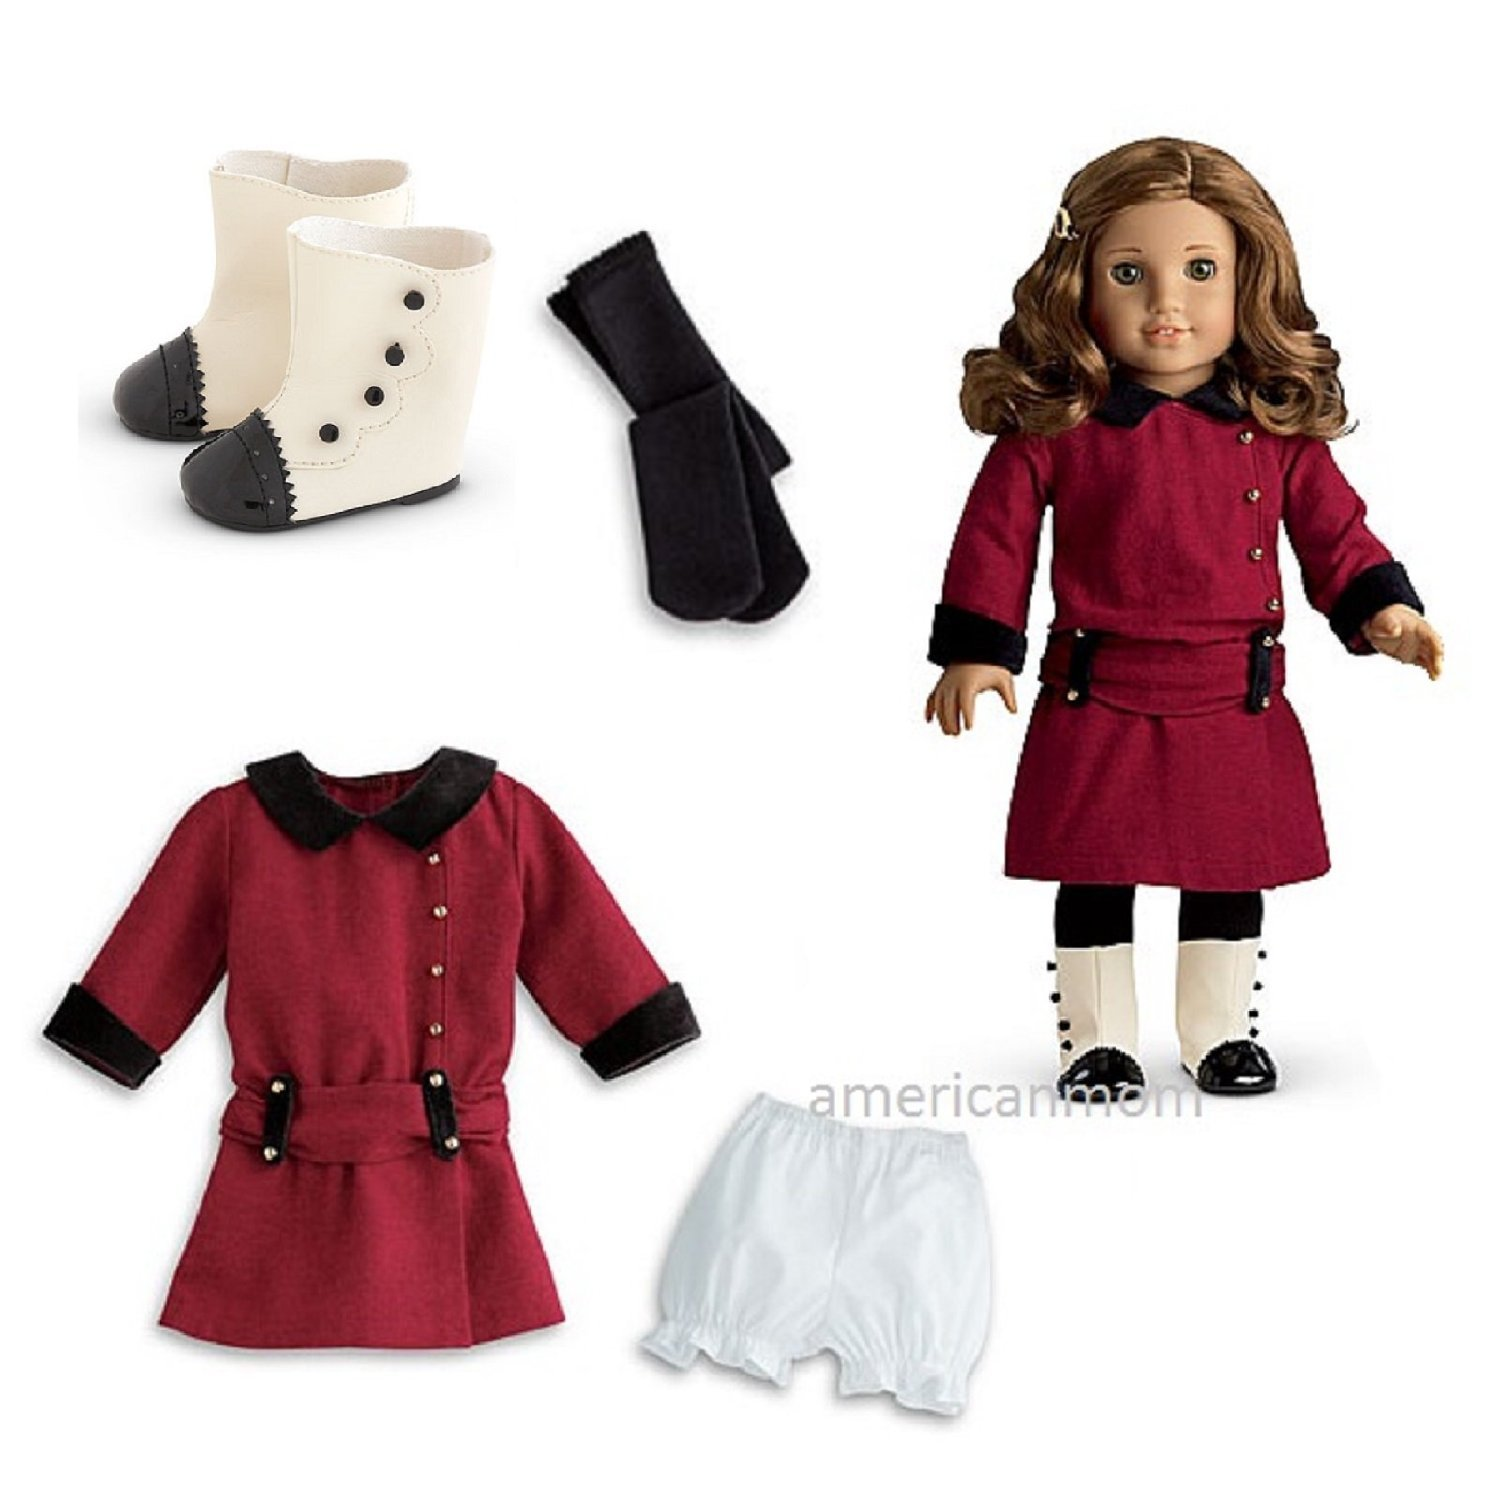 American Girl Rebecca's Not Classic Meet Outfit Outfit with Boots with for 18